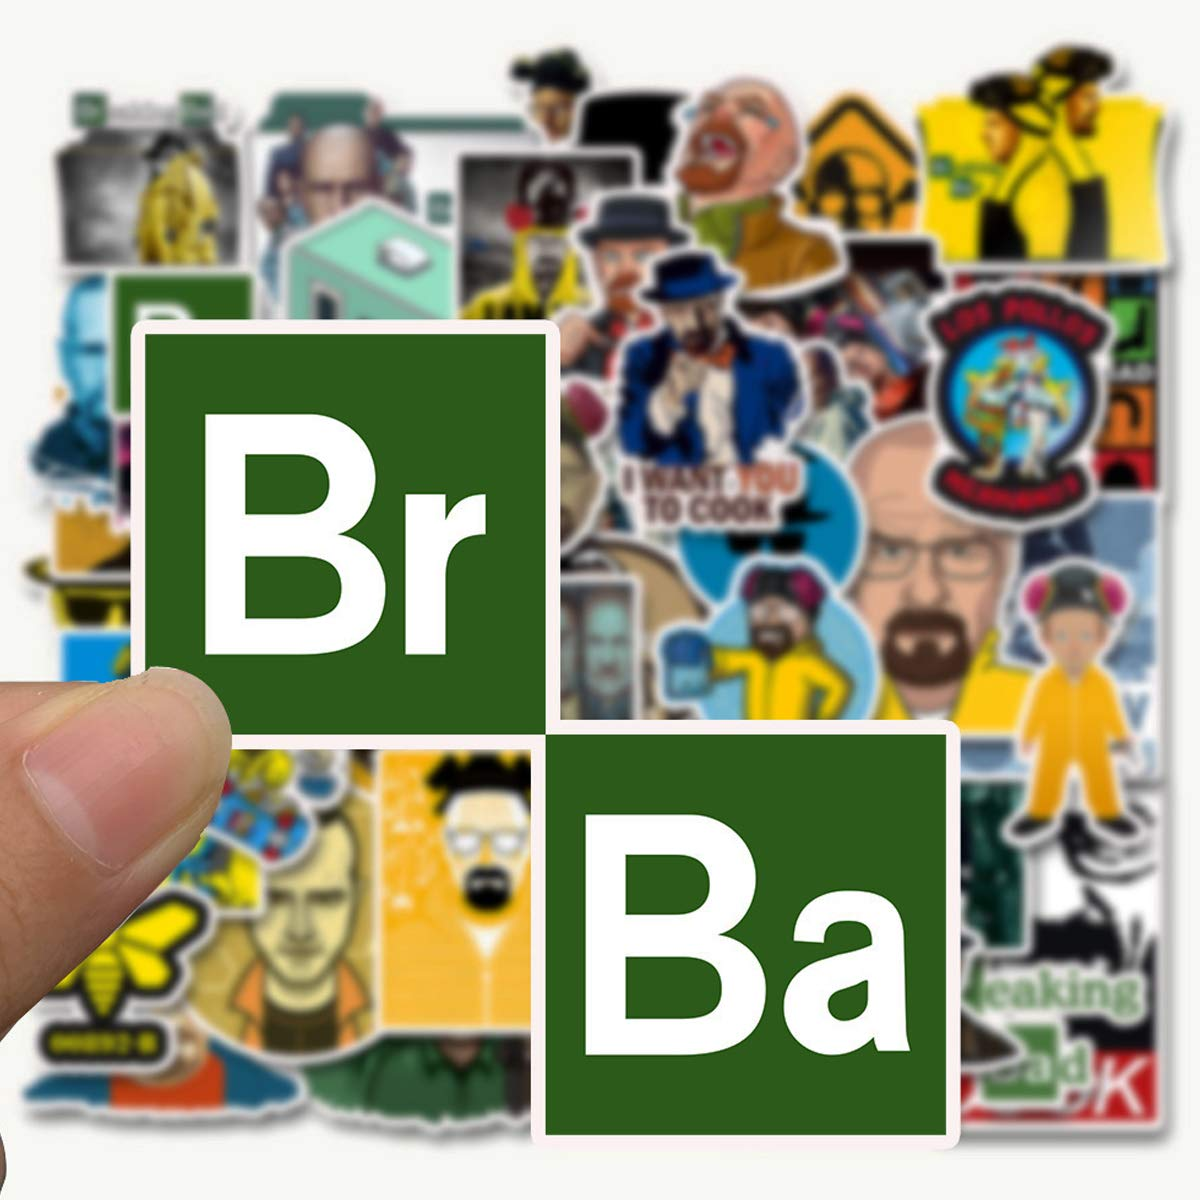 WOCOCO Breaking Bad Stickers, Waterproof Vinyl Stickers for Laptop, Water Bottles, HydroFlask (50 Pack)